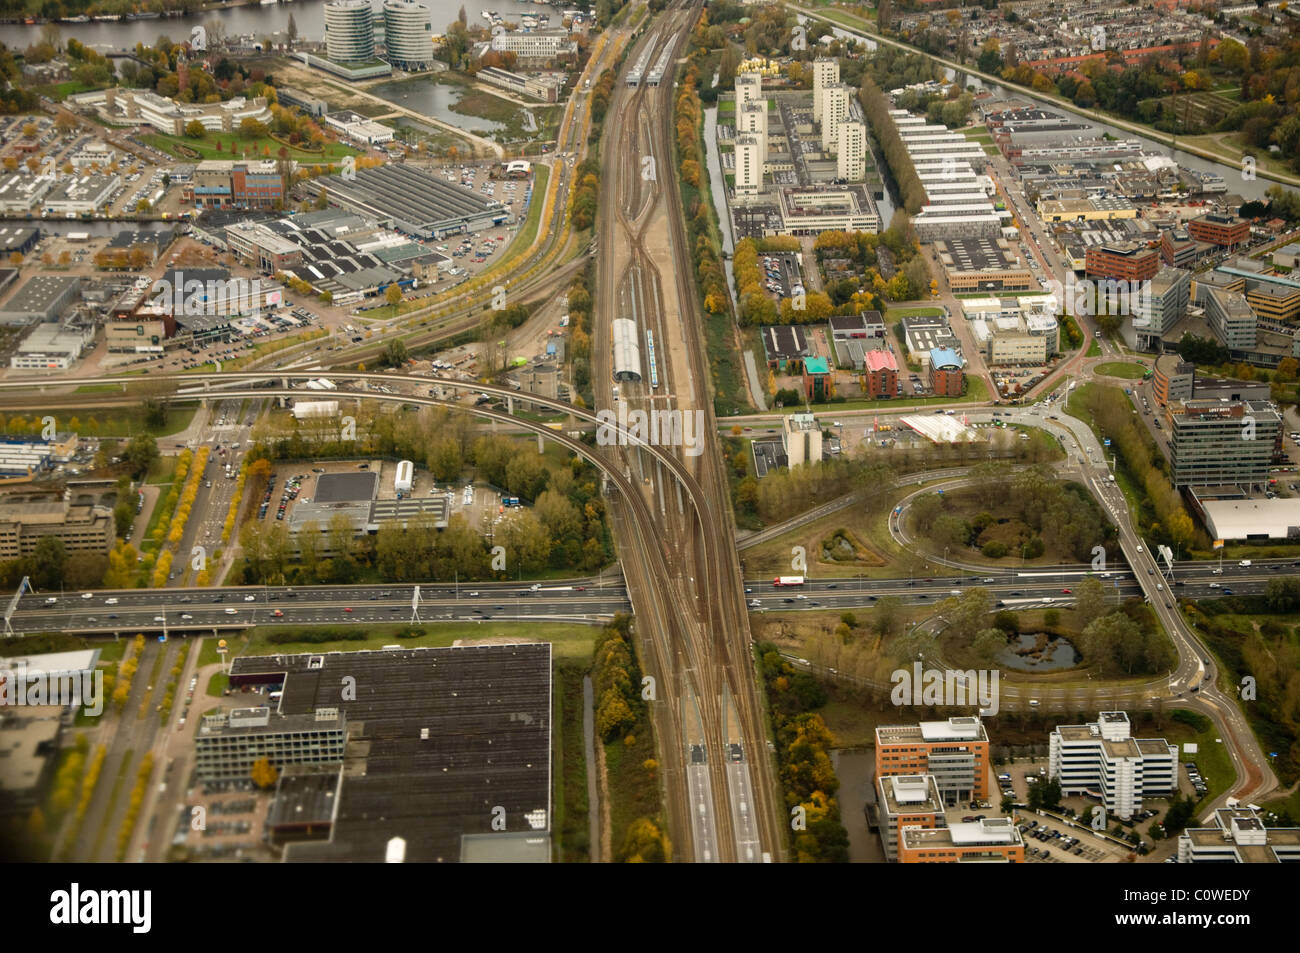 Aerial view from airplane from roads and highways of Amsterdam, Netherlands. - Stock Image